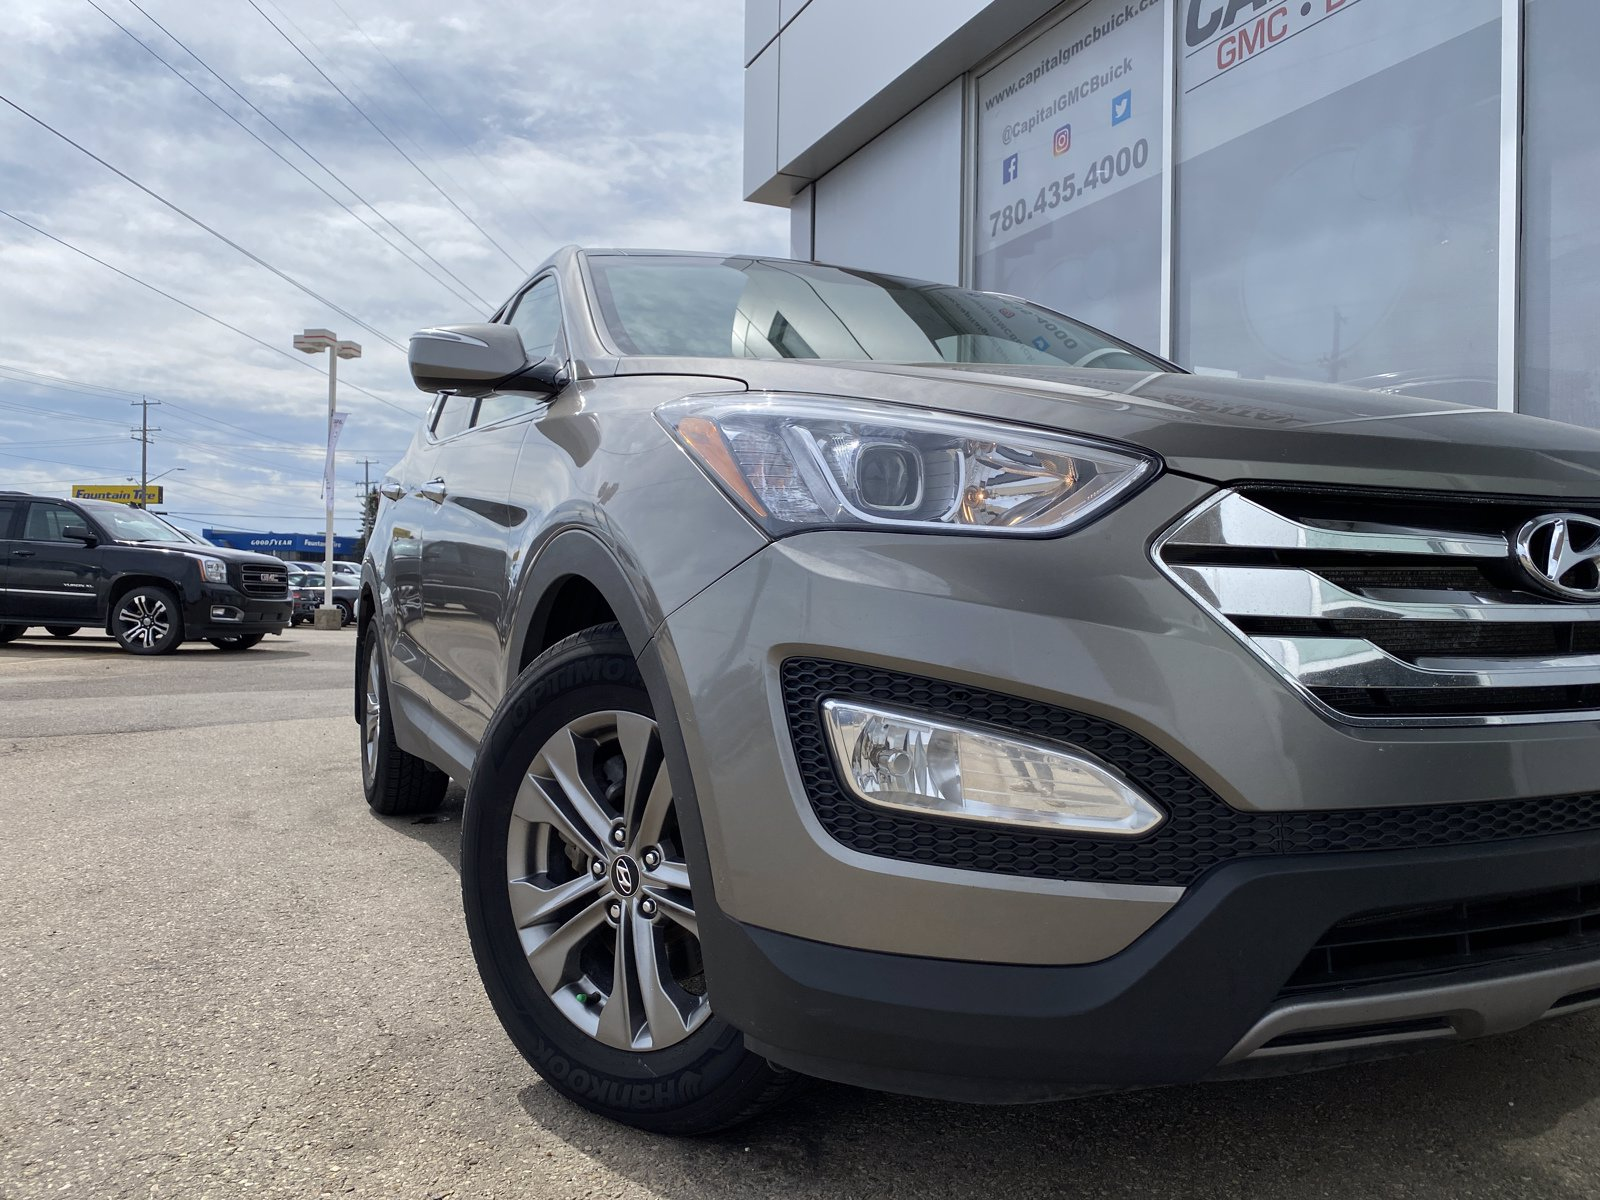 Certified Pre-Owned 2013 Hyundai Santa Fe Luxury SUNROOF HEATED LEATHER & STEERING REMOTE START